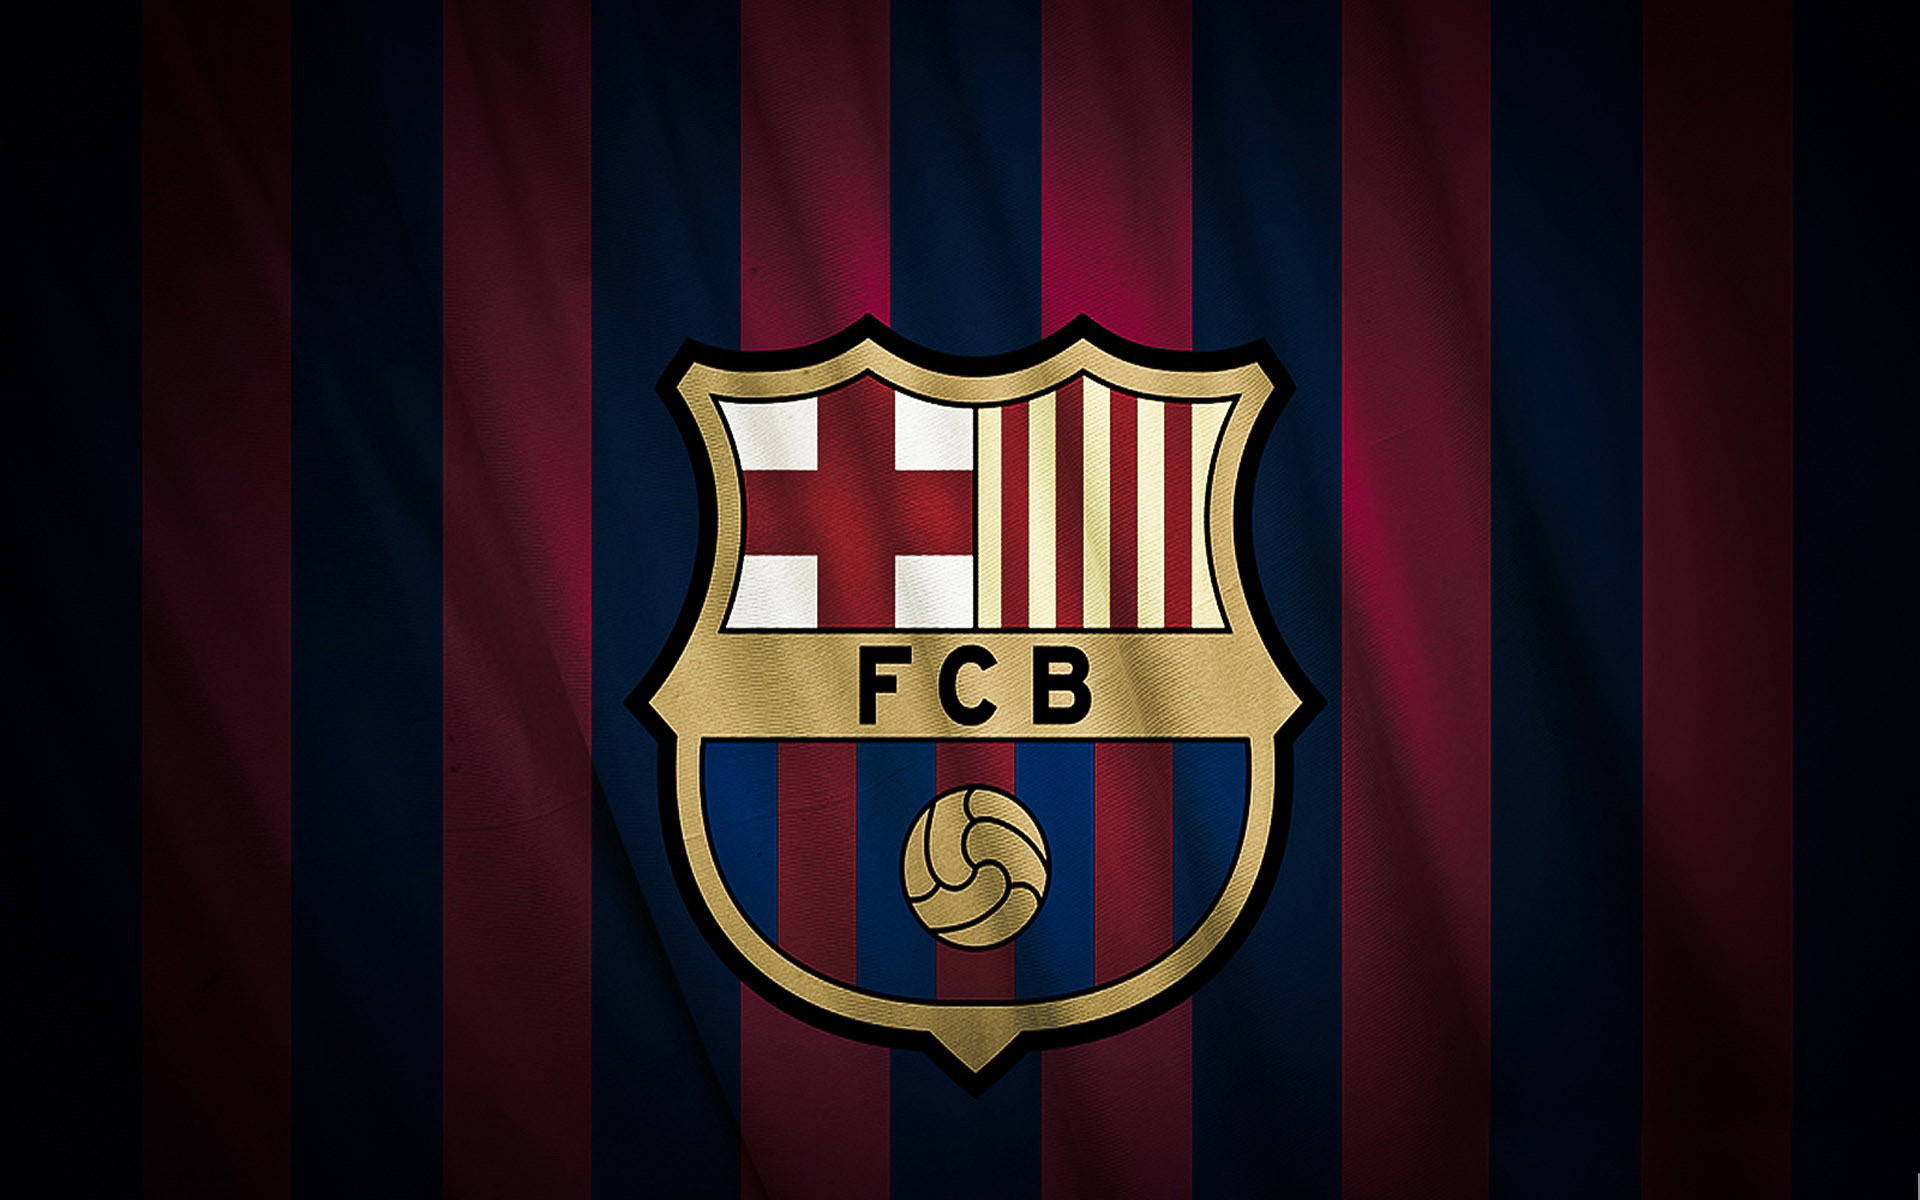 fc barcelona 2014 logo viewing gallery